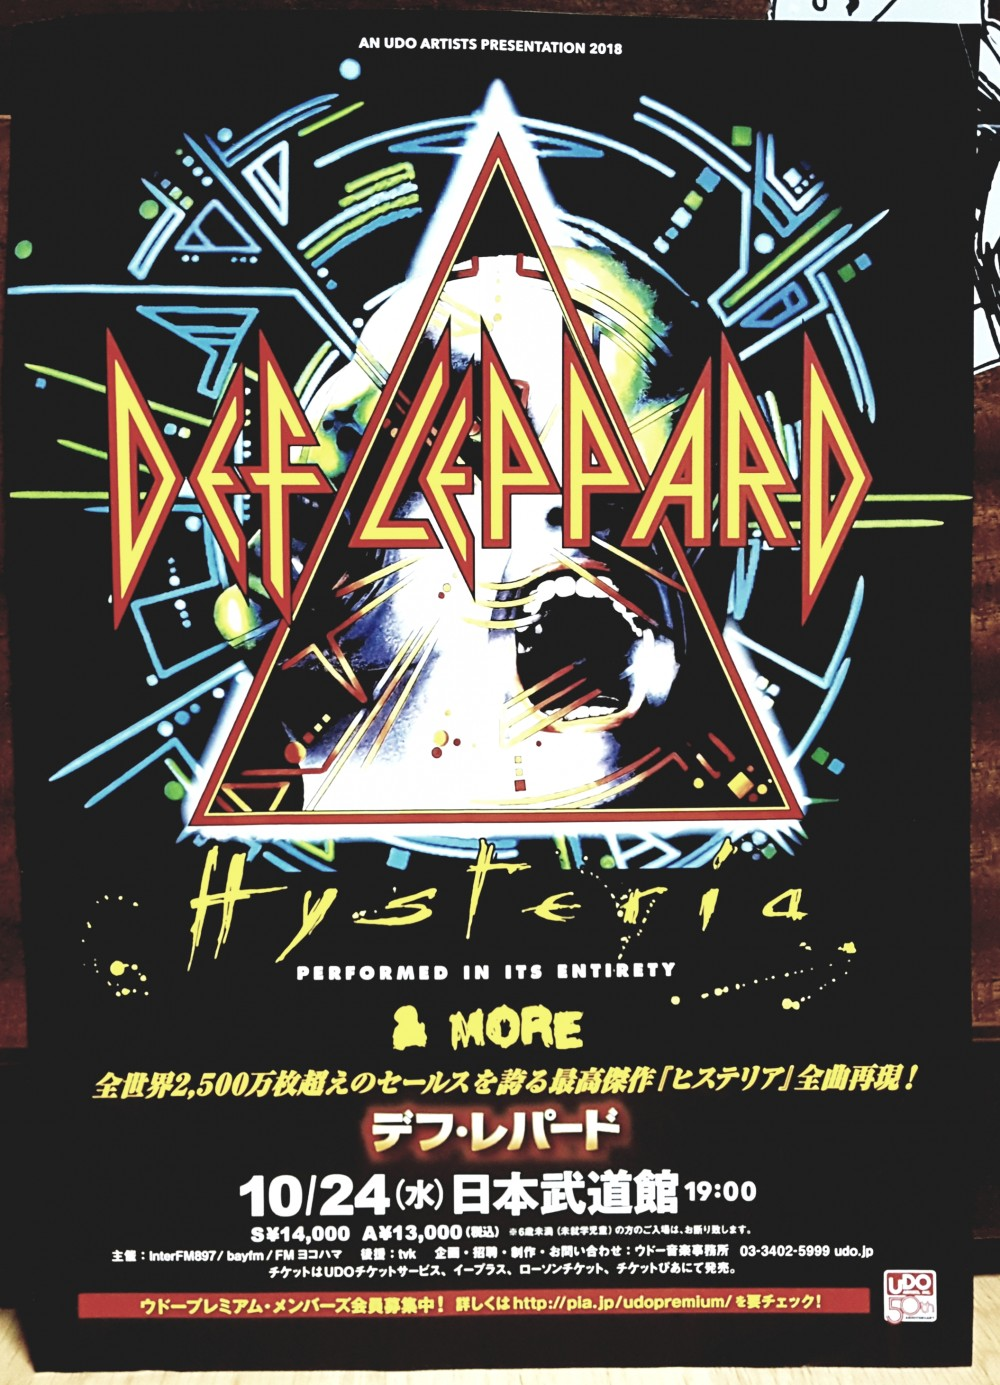 Def Leppard - Hysteria Photo